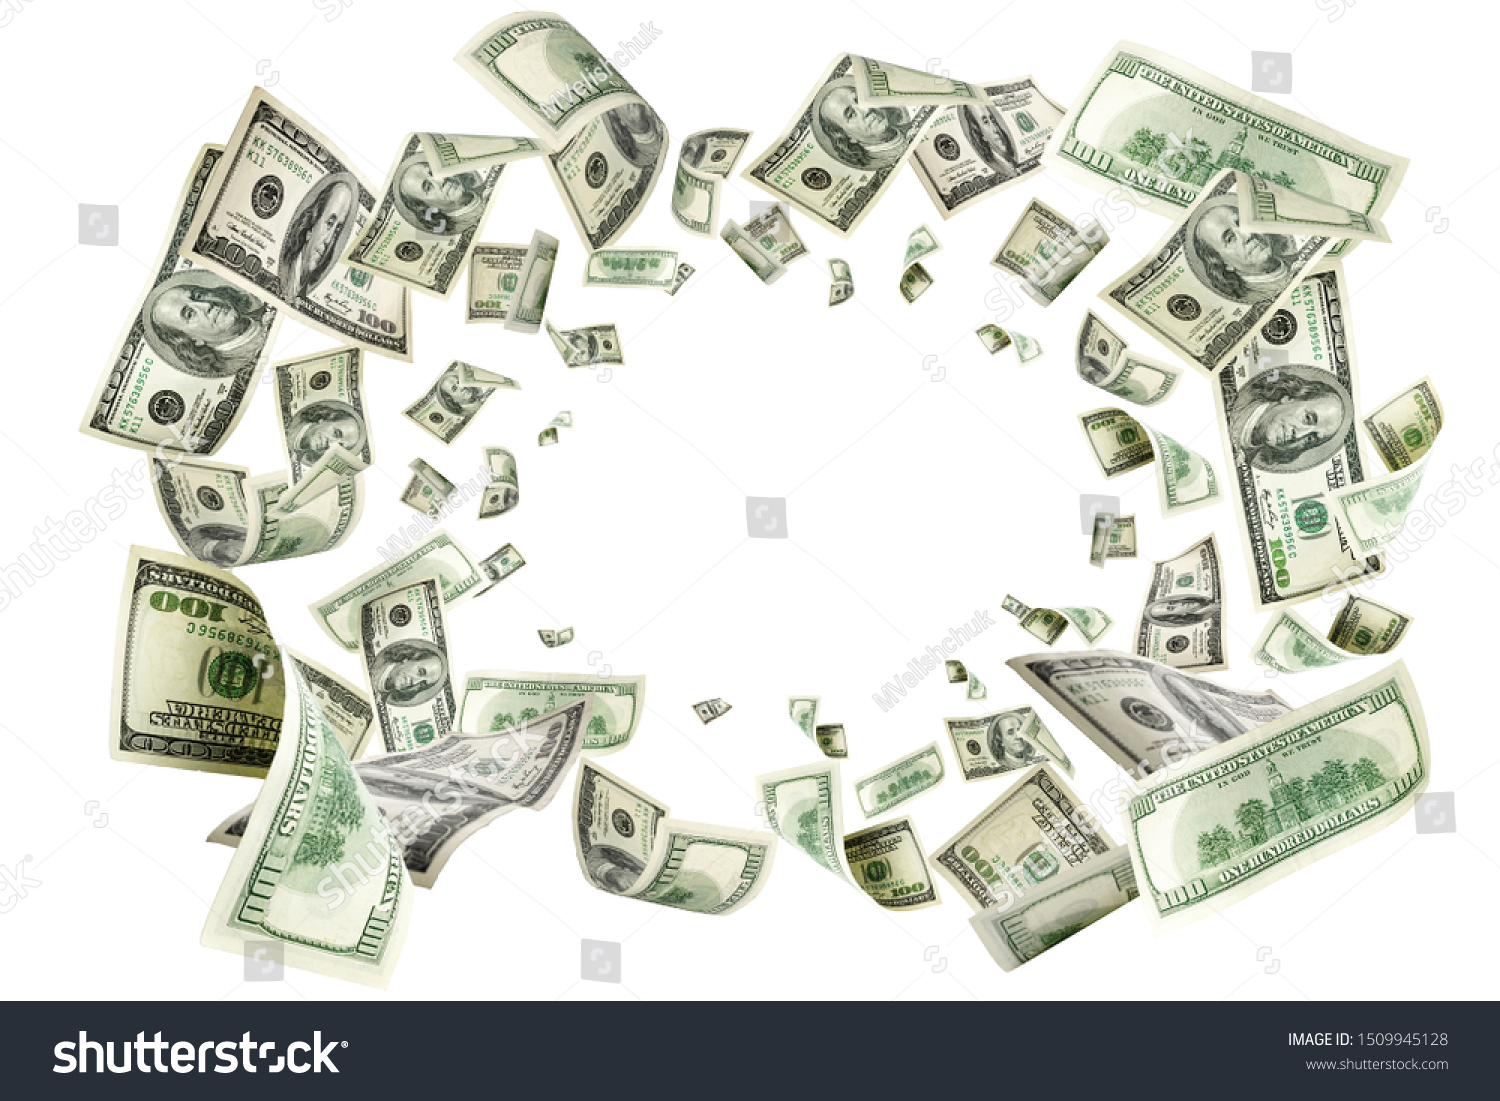 American Money Money Falling Dollar Sign Stock Photo Edit Now 1509945128 Polish your personal project or design with these falling money transparent png images, make it even more personalized and more attractive. https www shutterstock com image photo american money falling dollar sign cash 1509945128